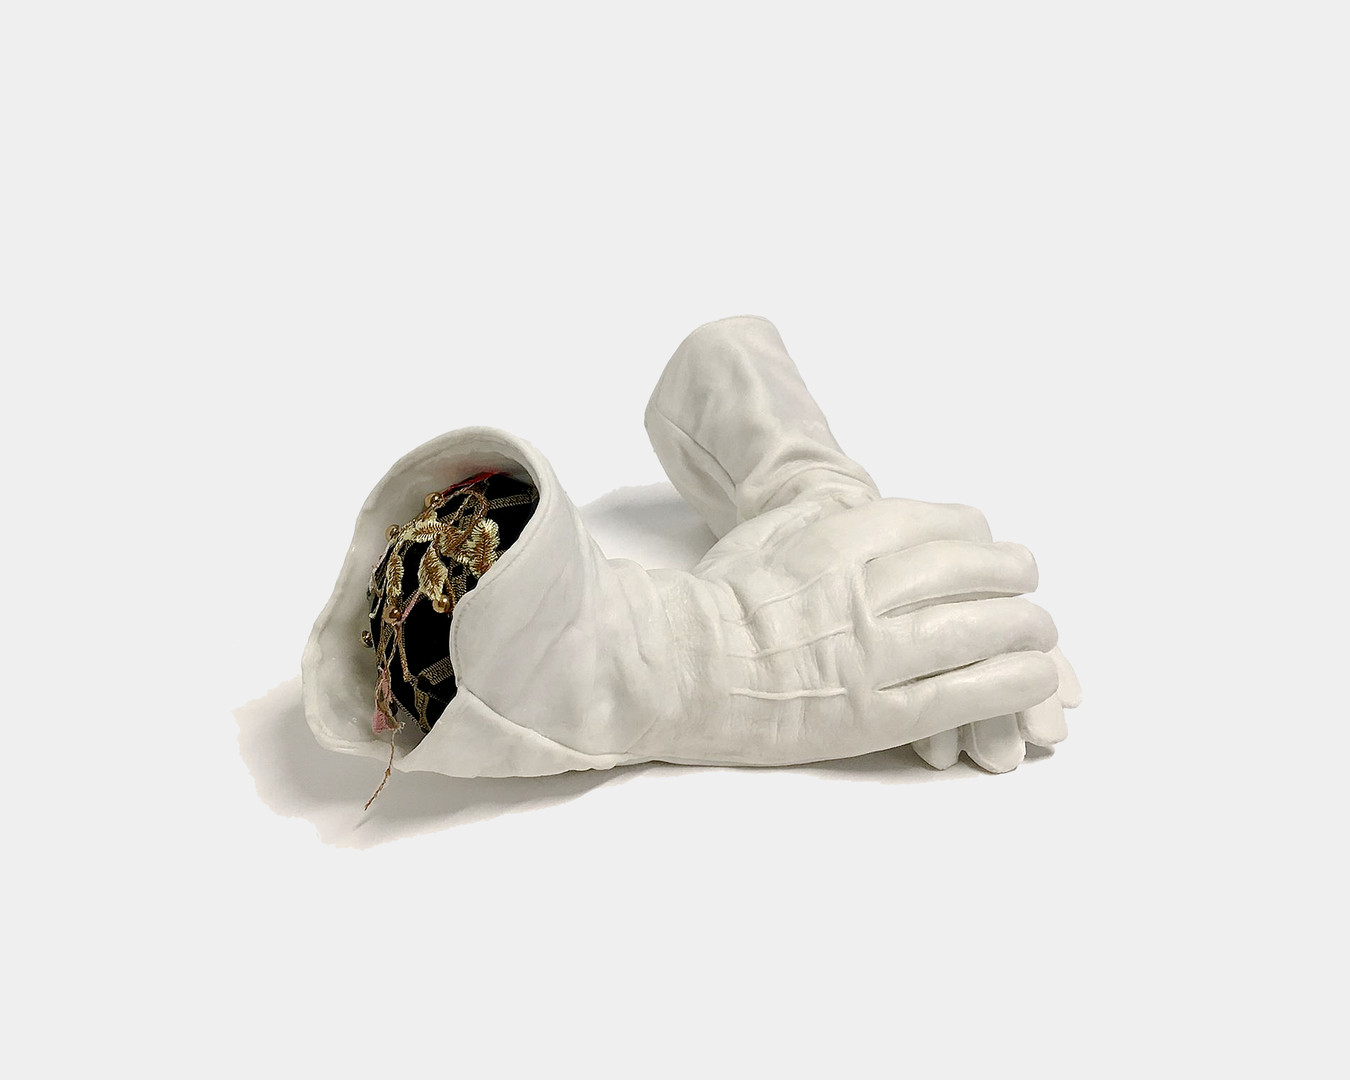 The gloves of the little worker in the street